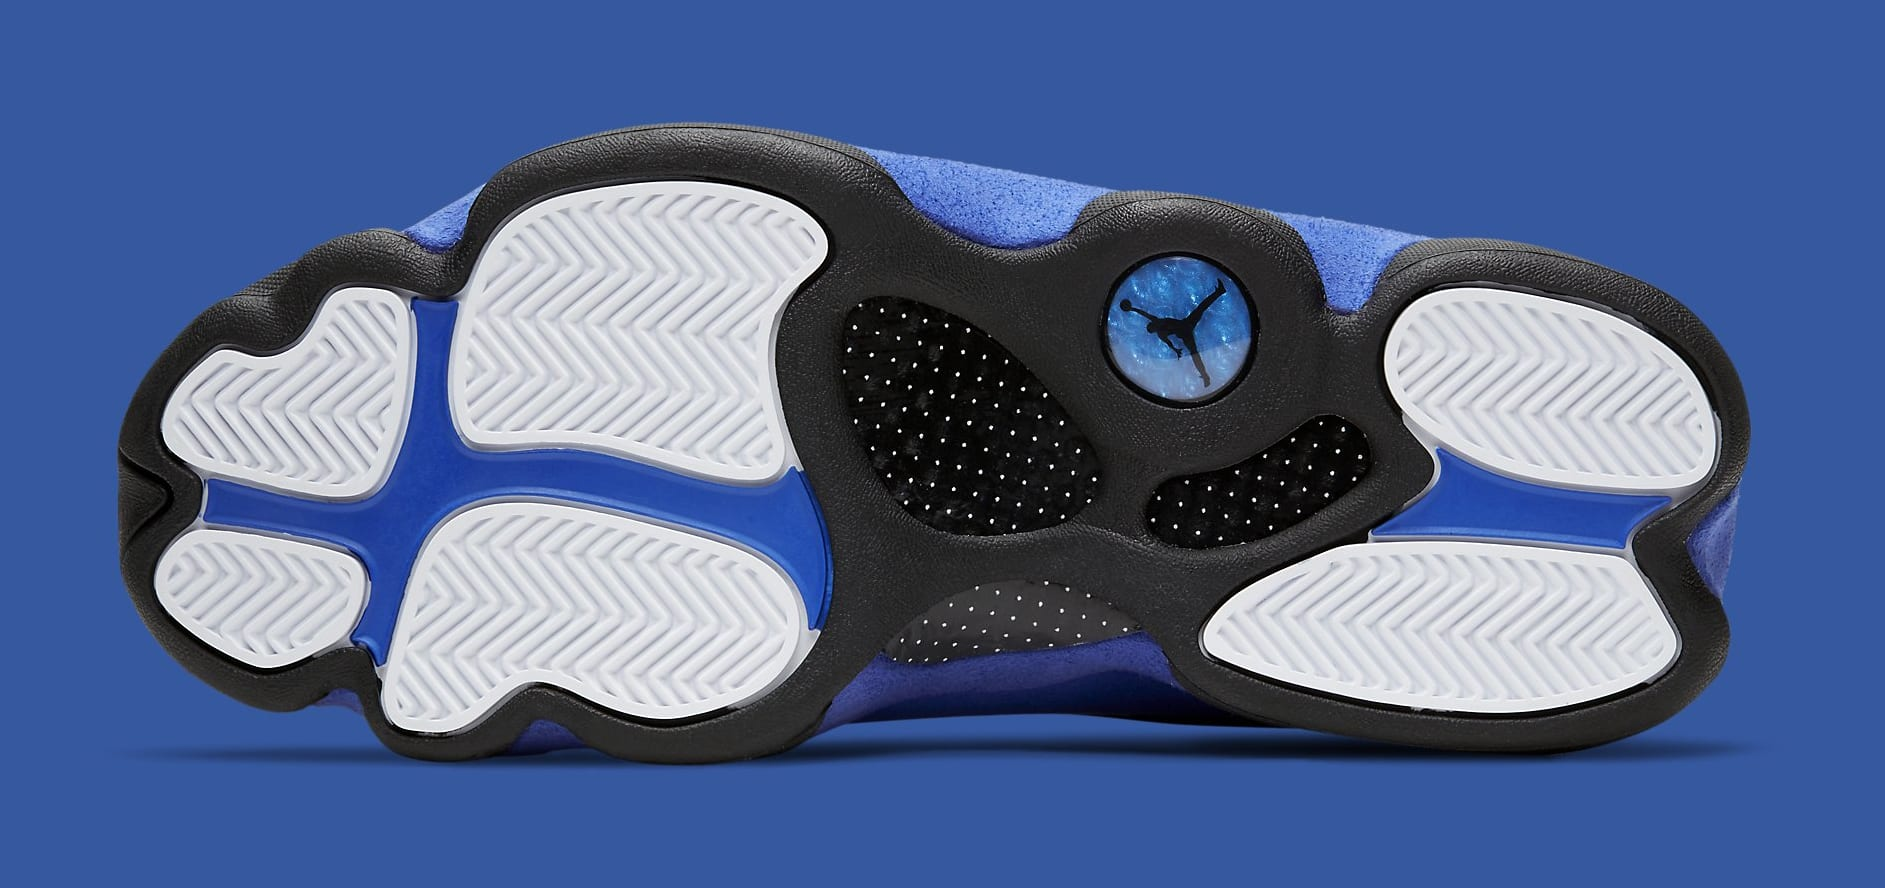 Air Jordan 13 Retro 'Hyper Royal' 414571-040 Outsole